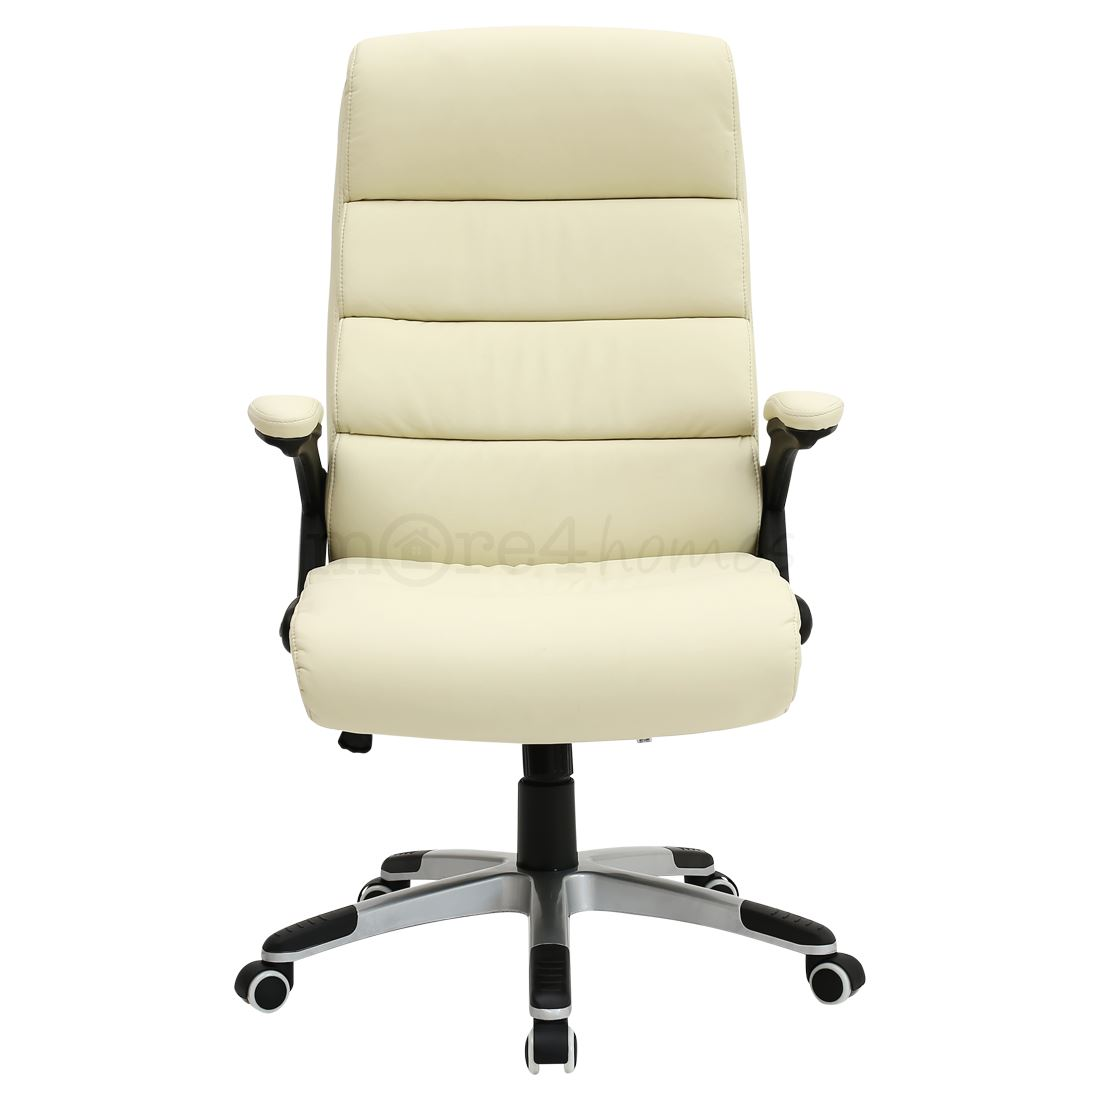 luxury office chairs uk wheelchair harness havana reclining executive leather desk